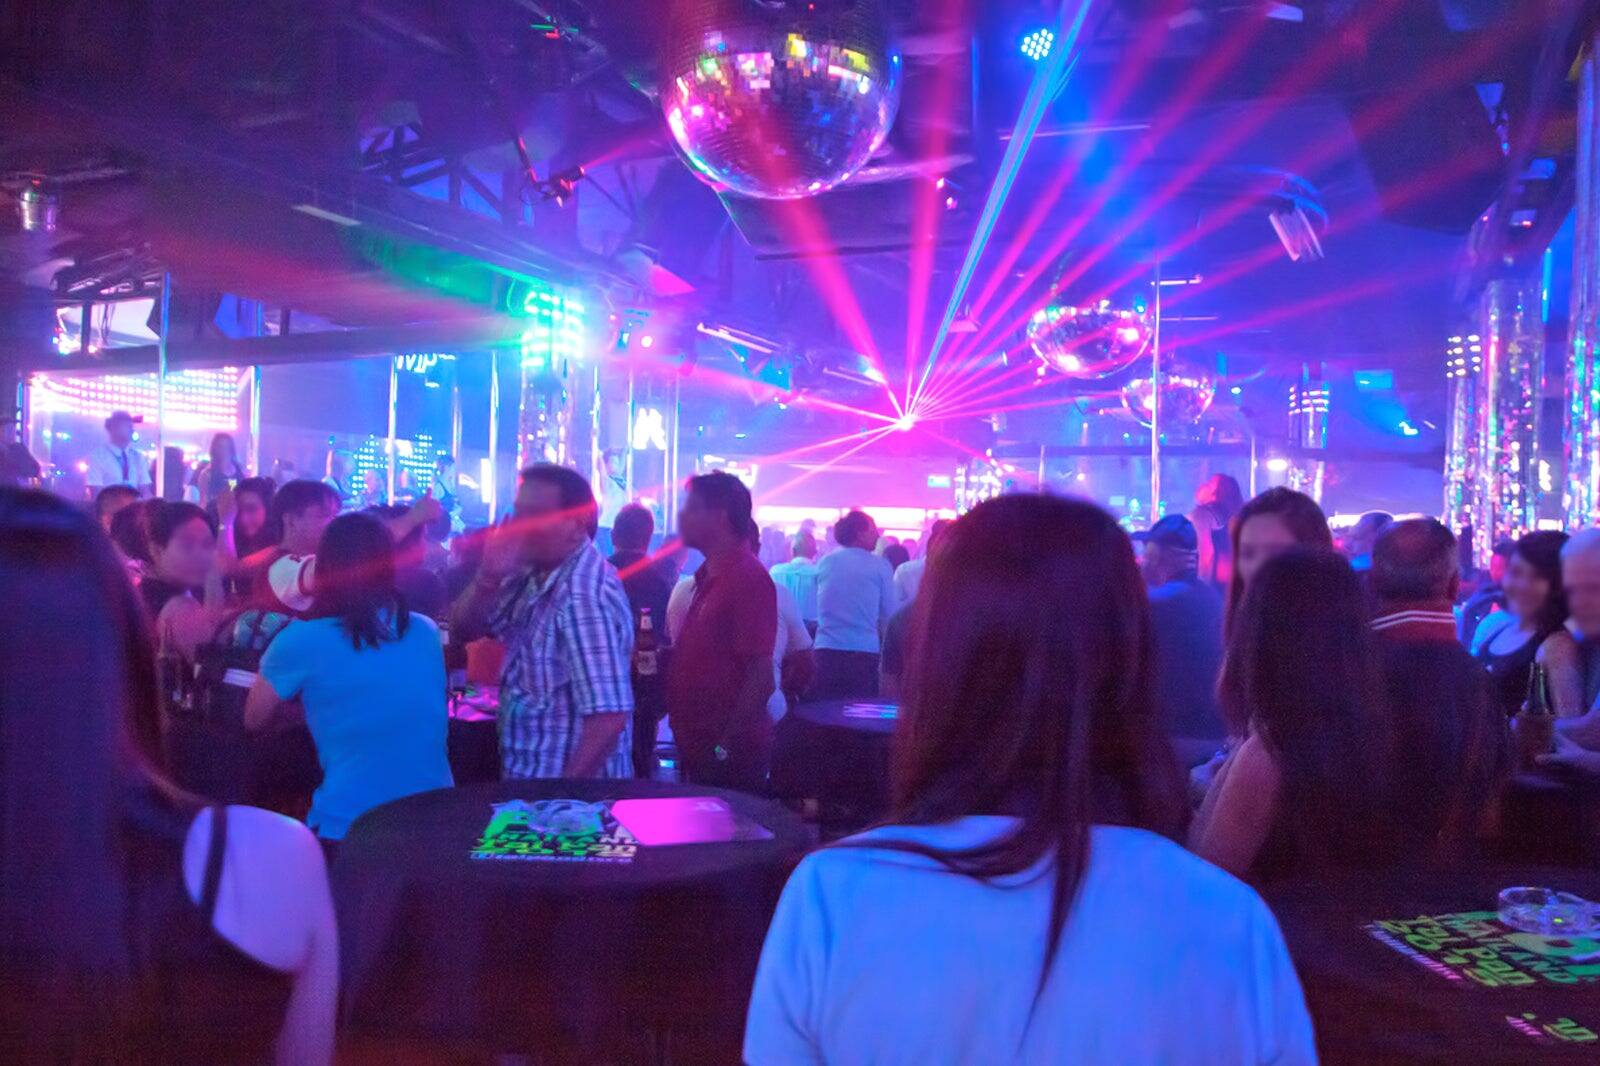 Tourism in Phuket May Reopen Oct 1 – Tourism Ministry